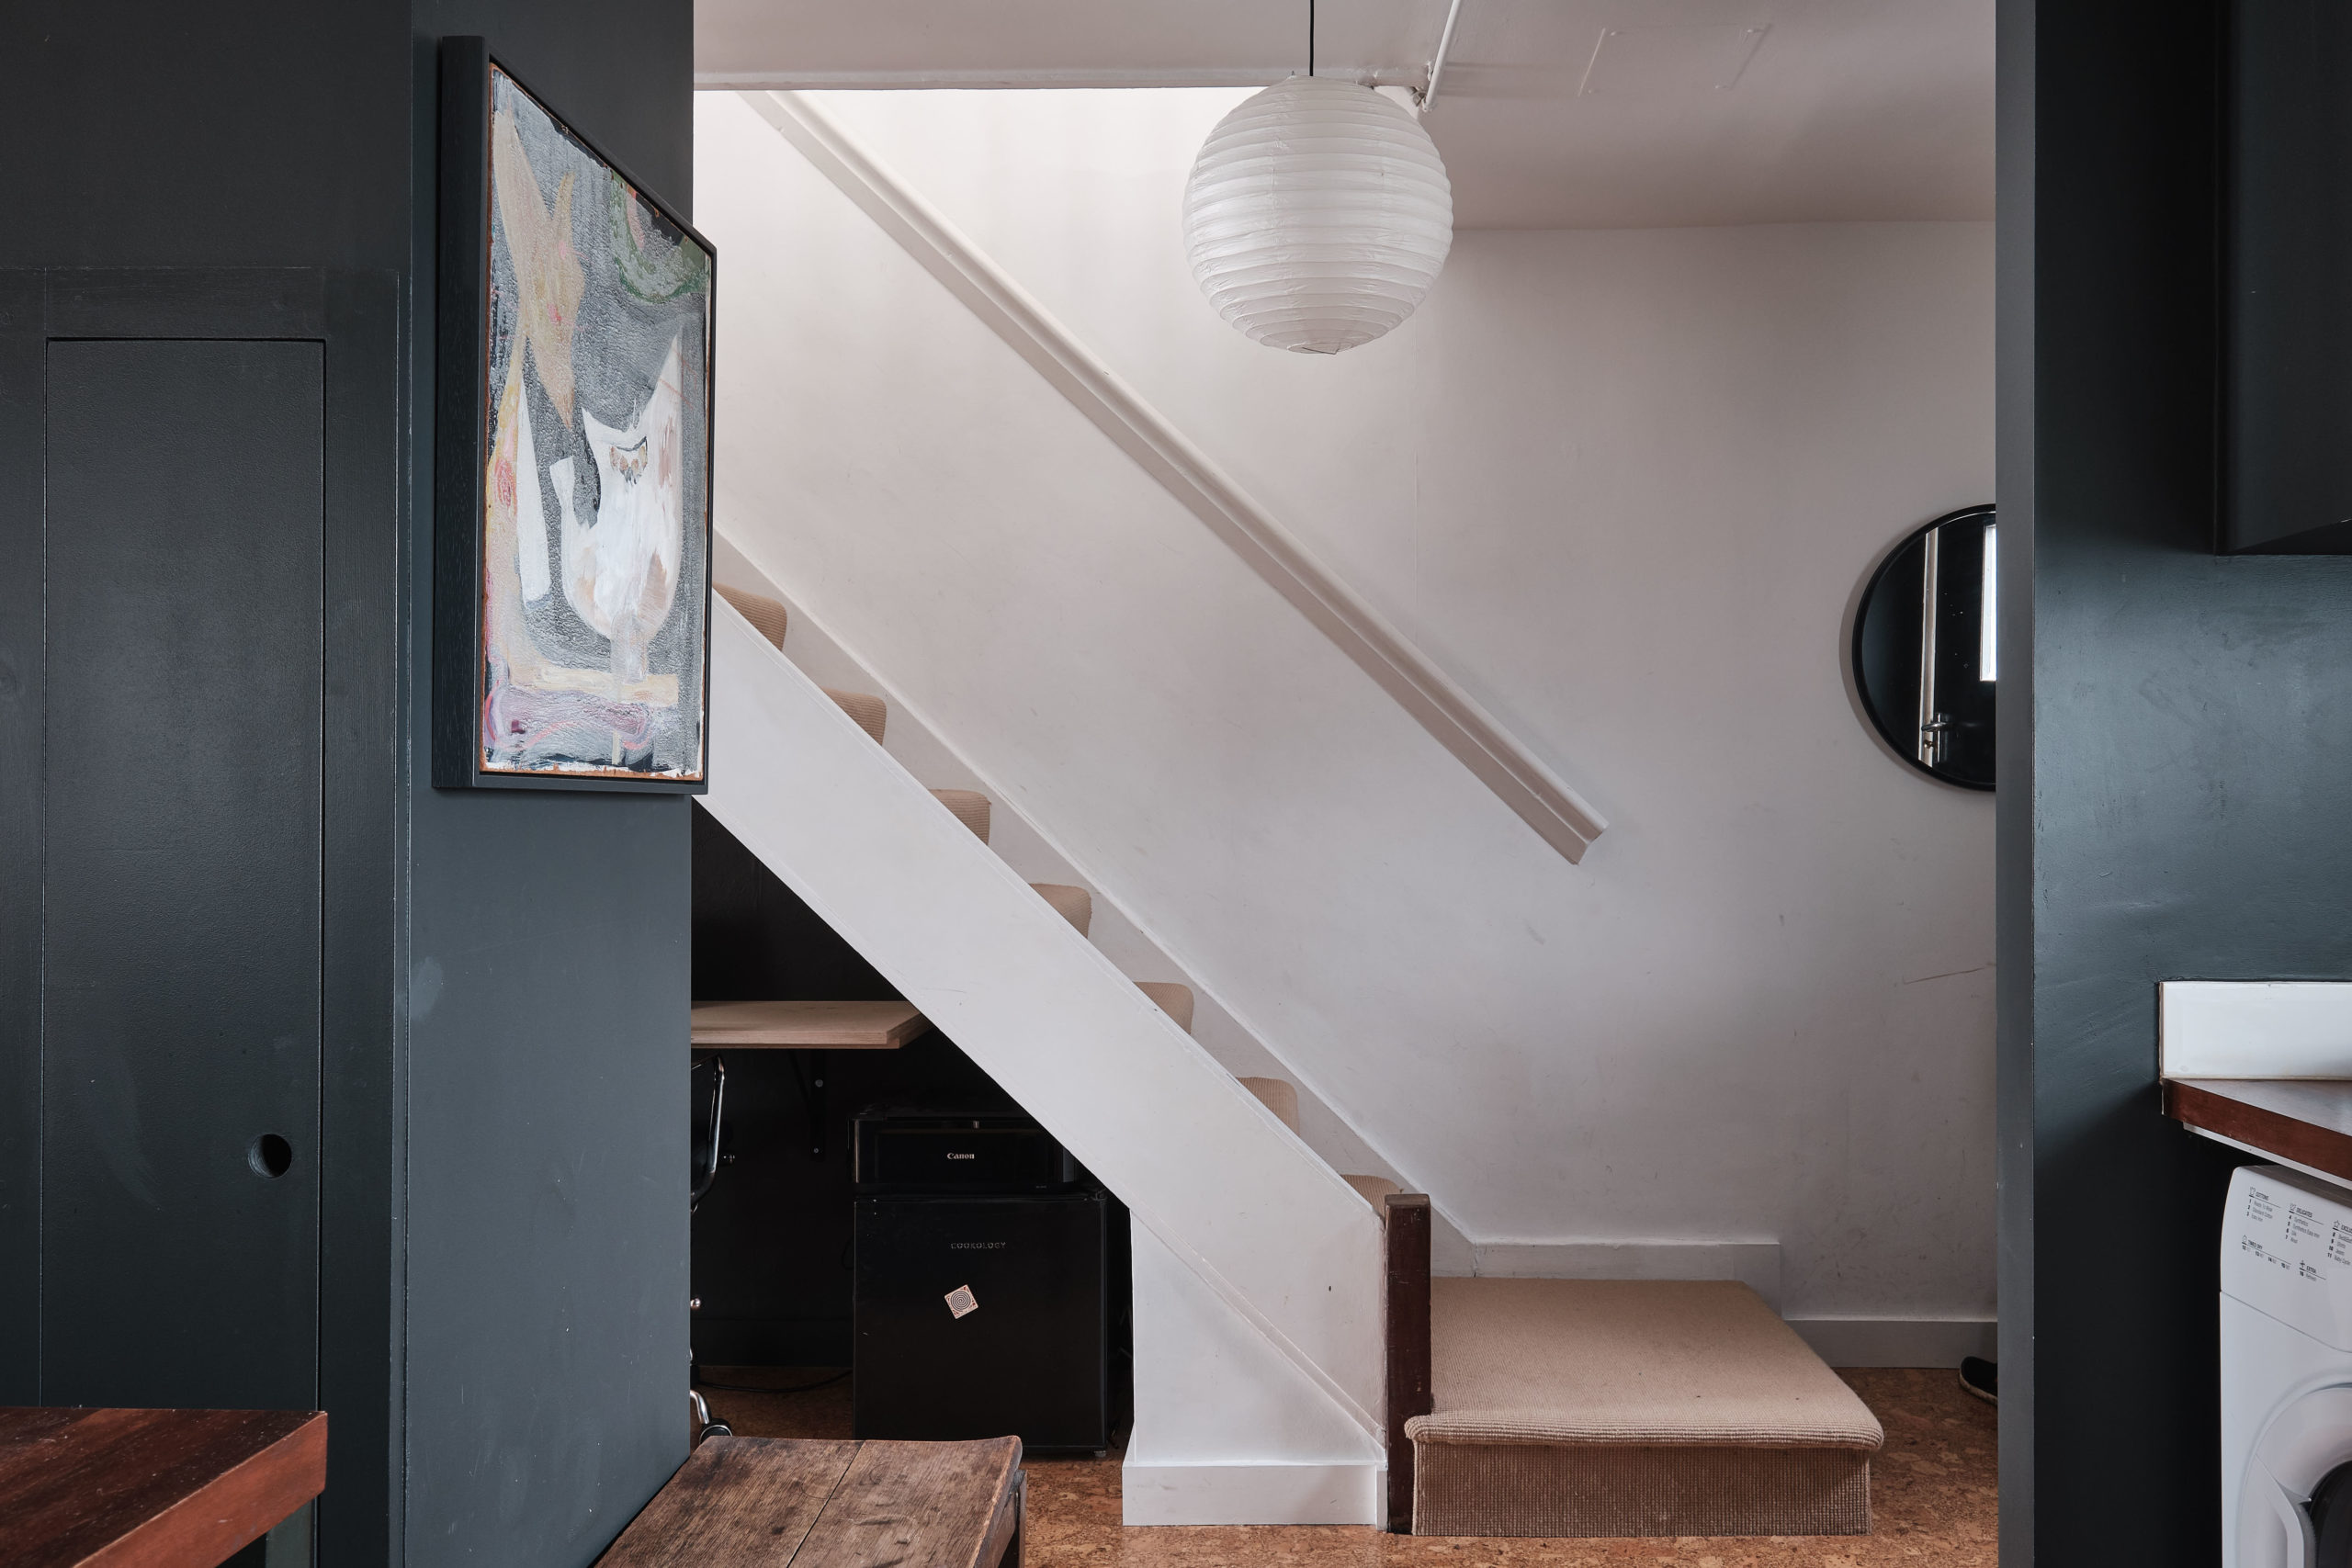 Quaker-Court-Old-Street-Flat-Interior-by-Patternity-photo-by-Aucoot-Estate-Agents-All Rights Reserved